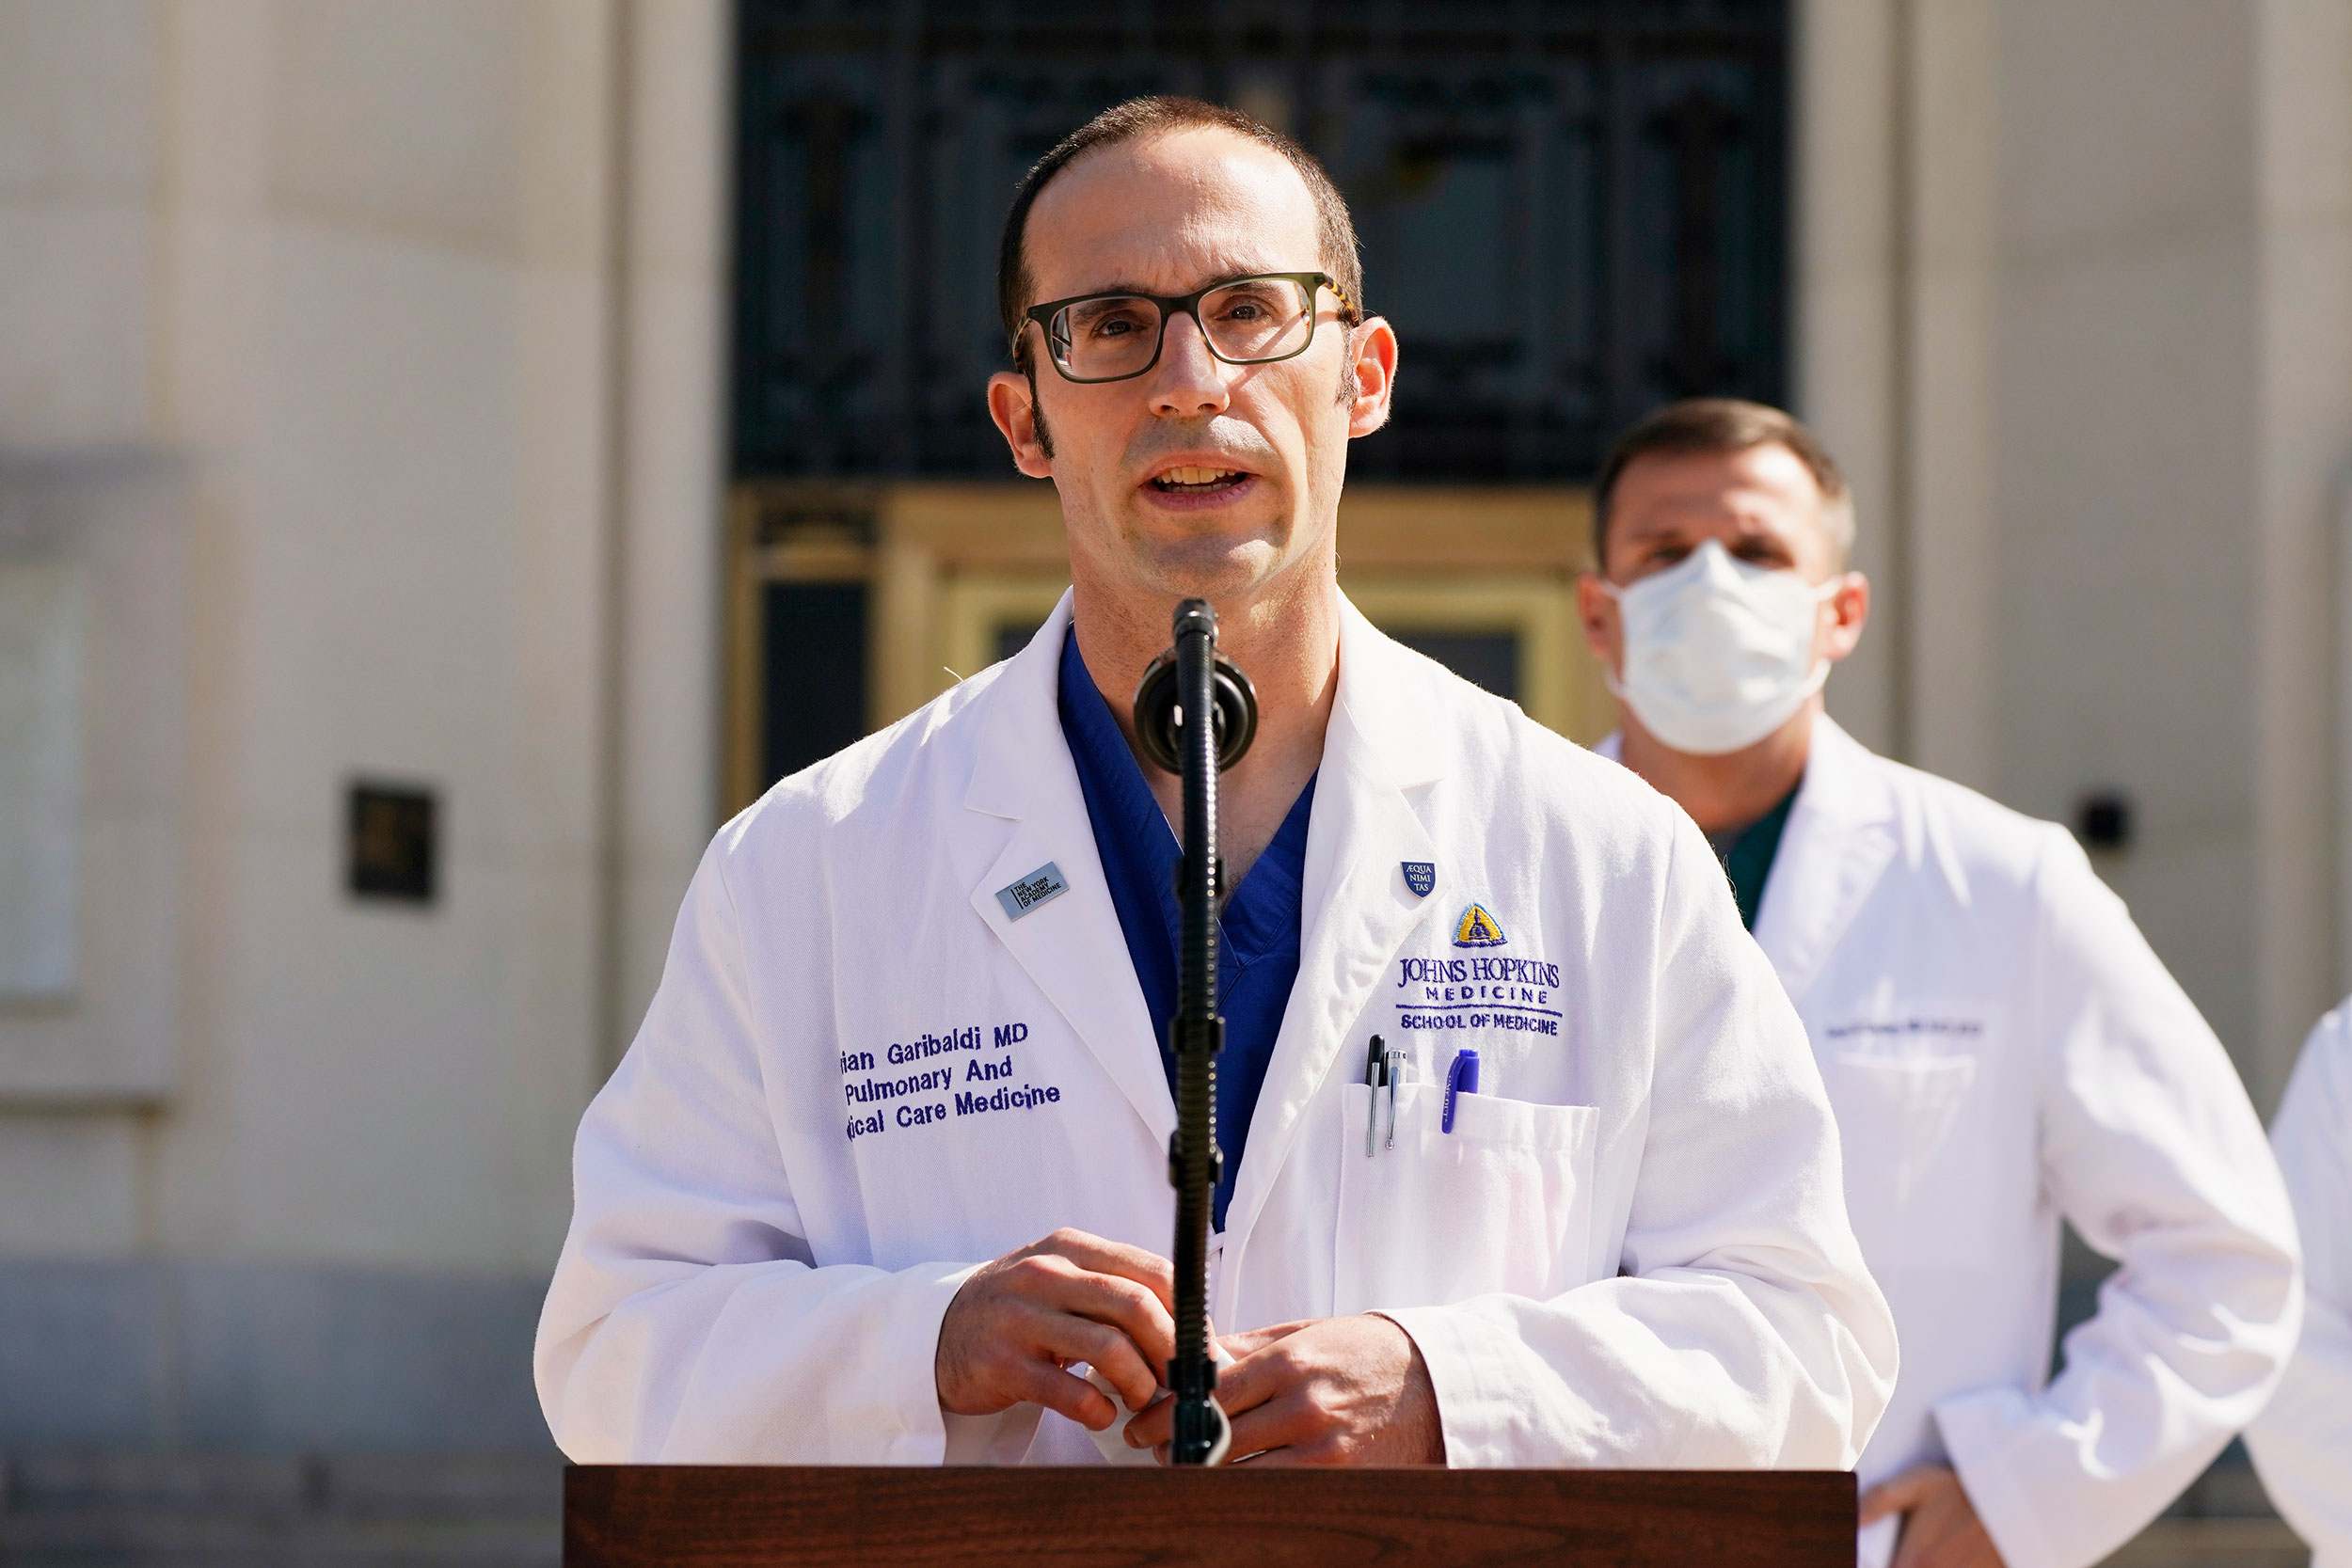 Dr. Brian Garibaldi speaks with reporters at Walter Reed National Military Medical Center on October 4 in Bethesda, Maryland.